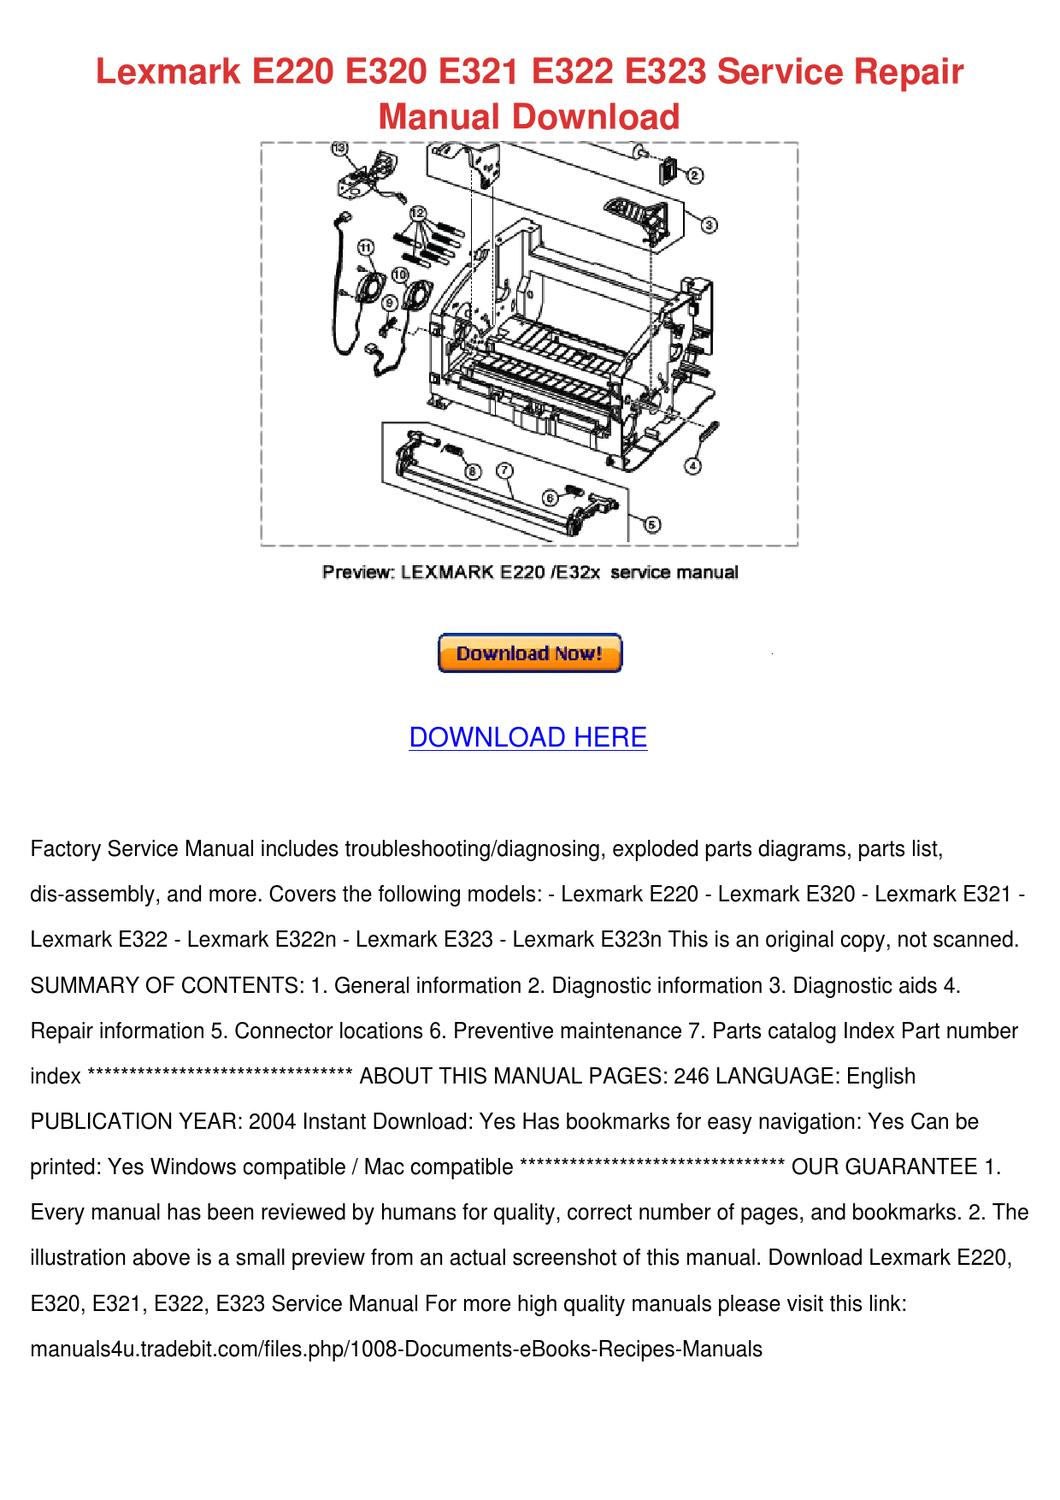 1997 mercedes e320 service repair manual 97. Pdf by linda pong issuu.